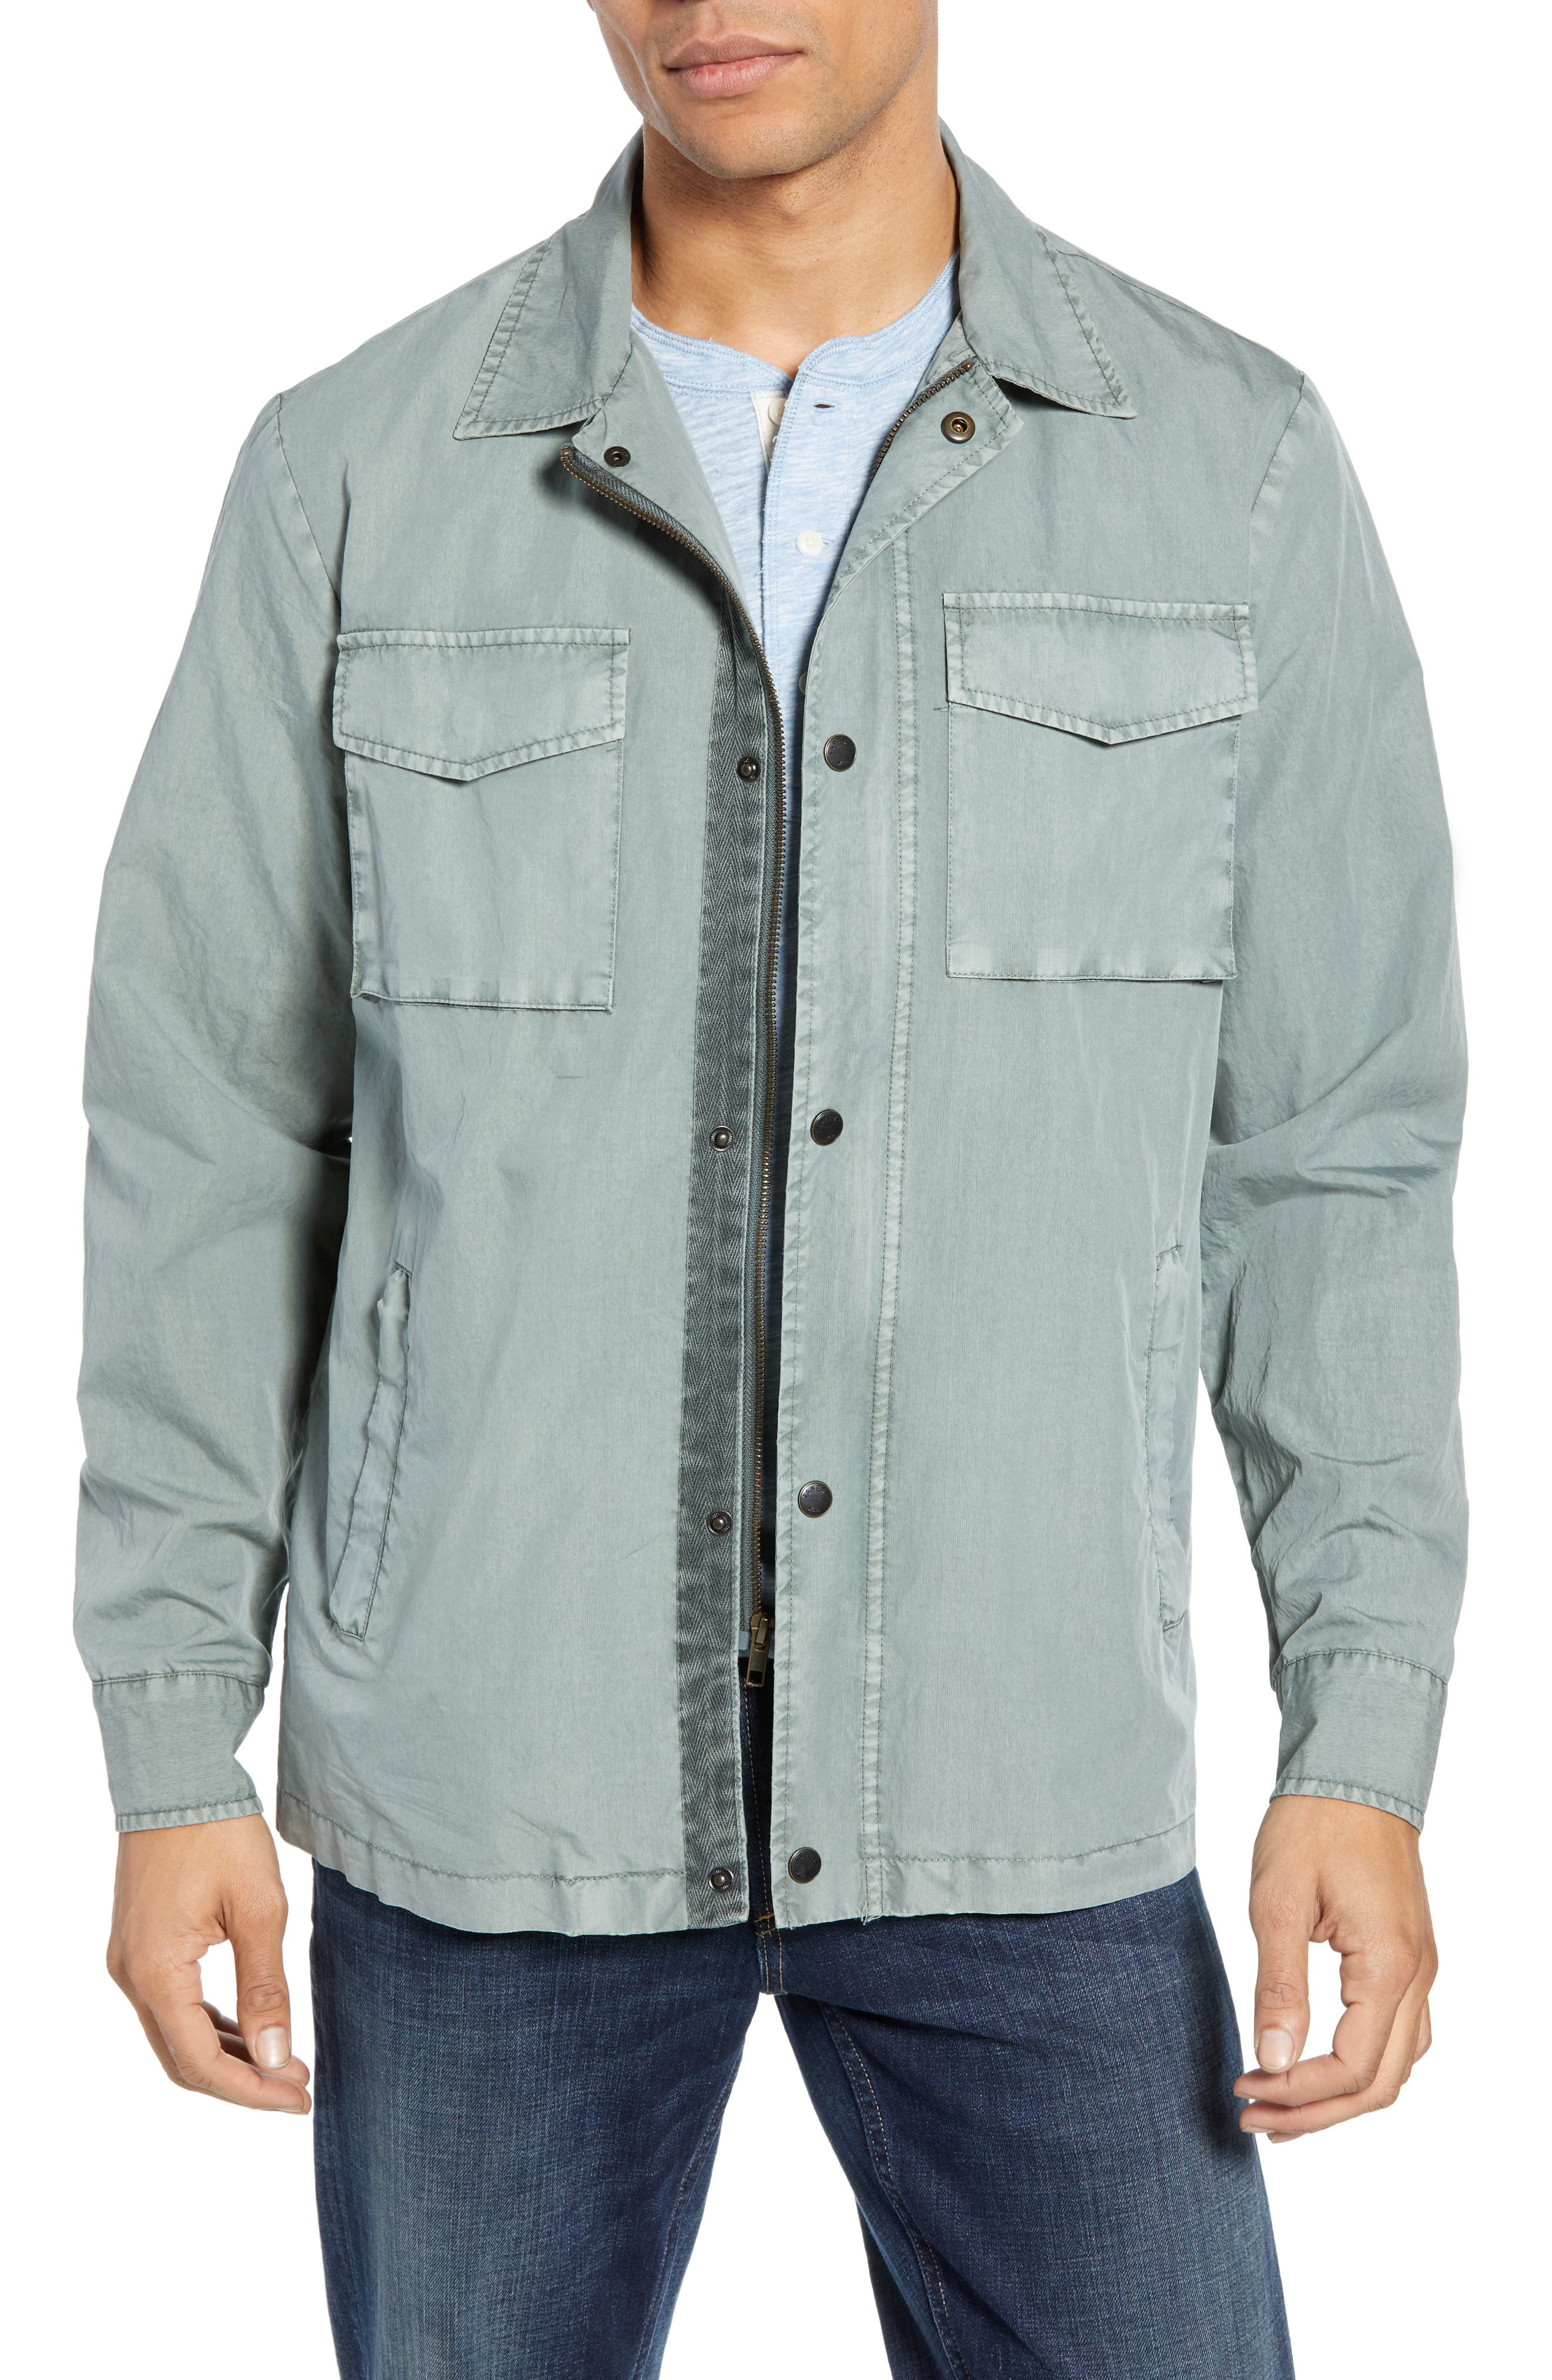 8c607a82 Buy faherty clothing for men - Best men's faherty clothing shop - Cools.com